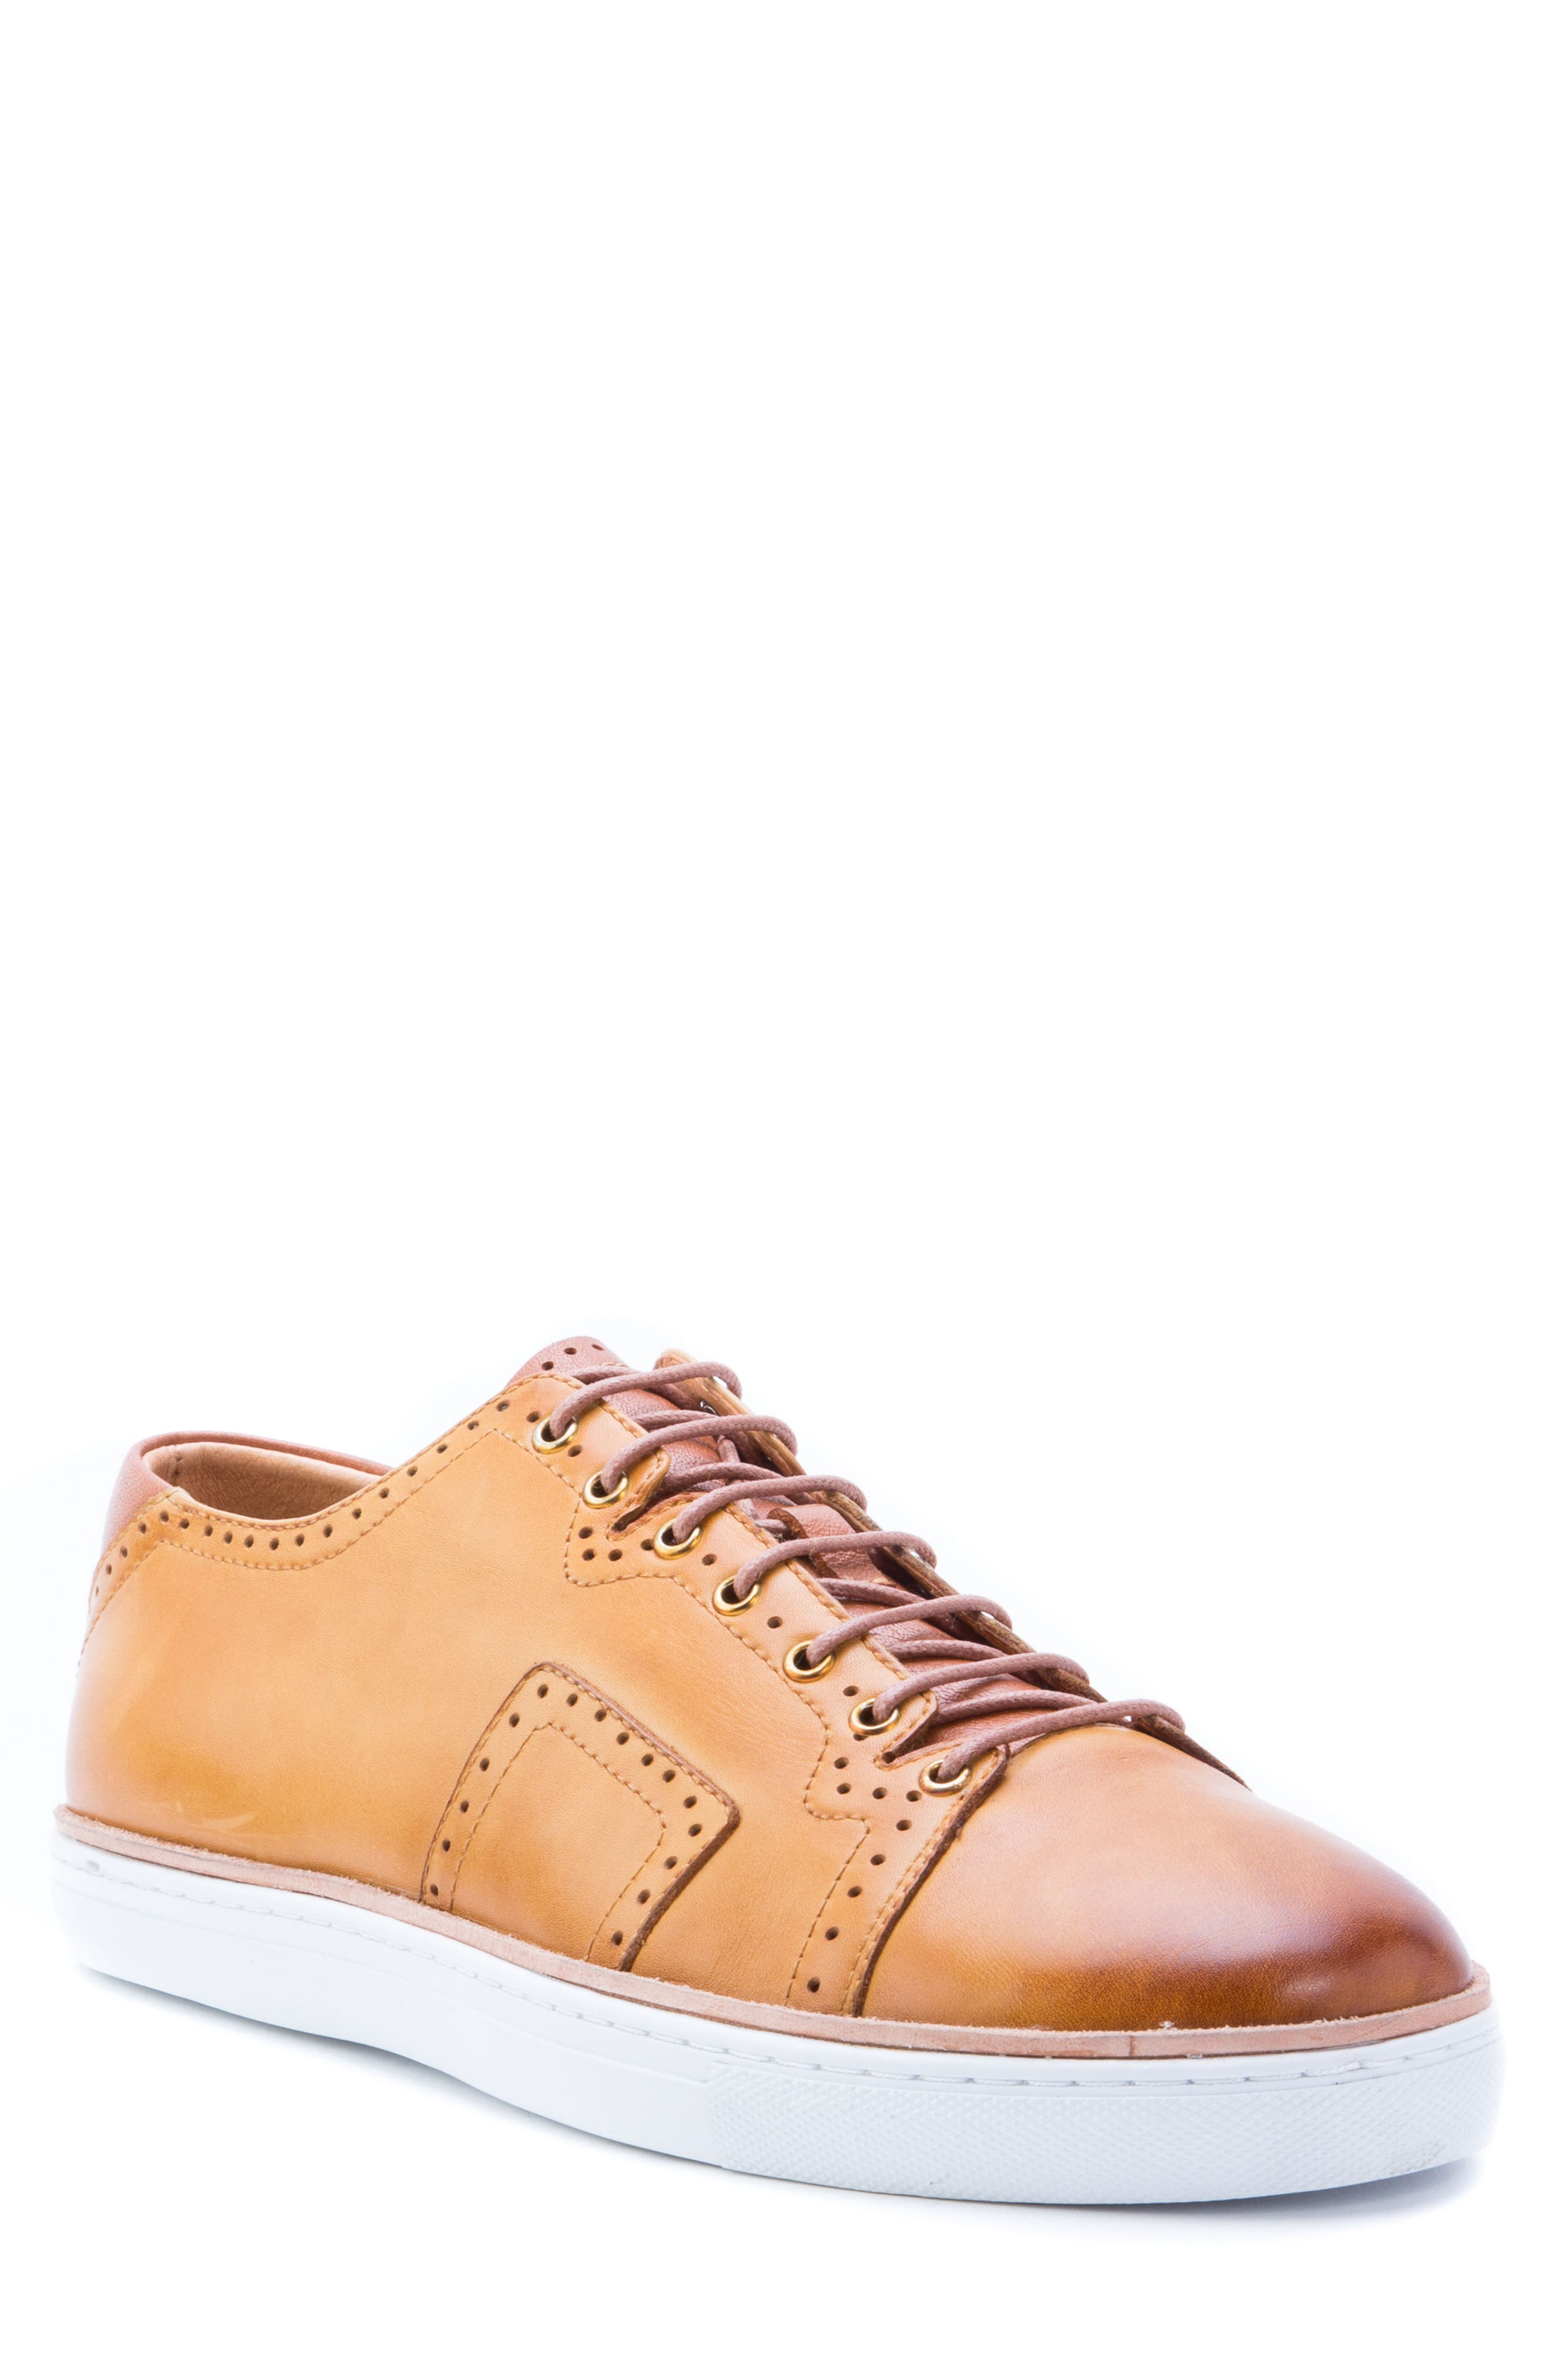 Marti Low Top Sneaker,                             Main thumbnail 1, color,                             Cognac Leather